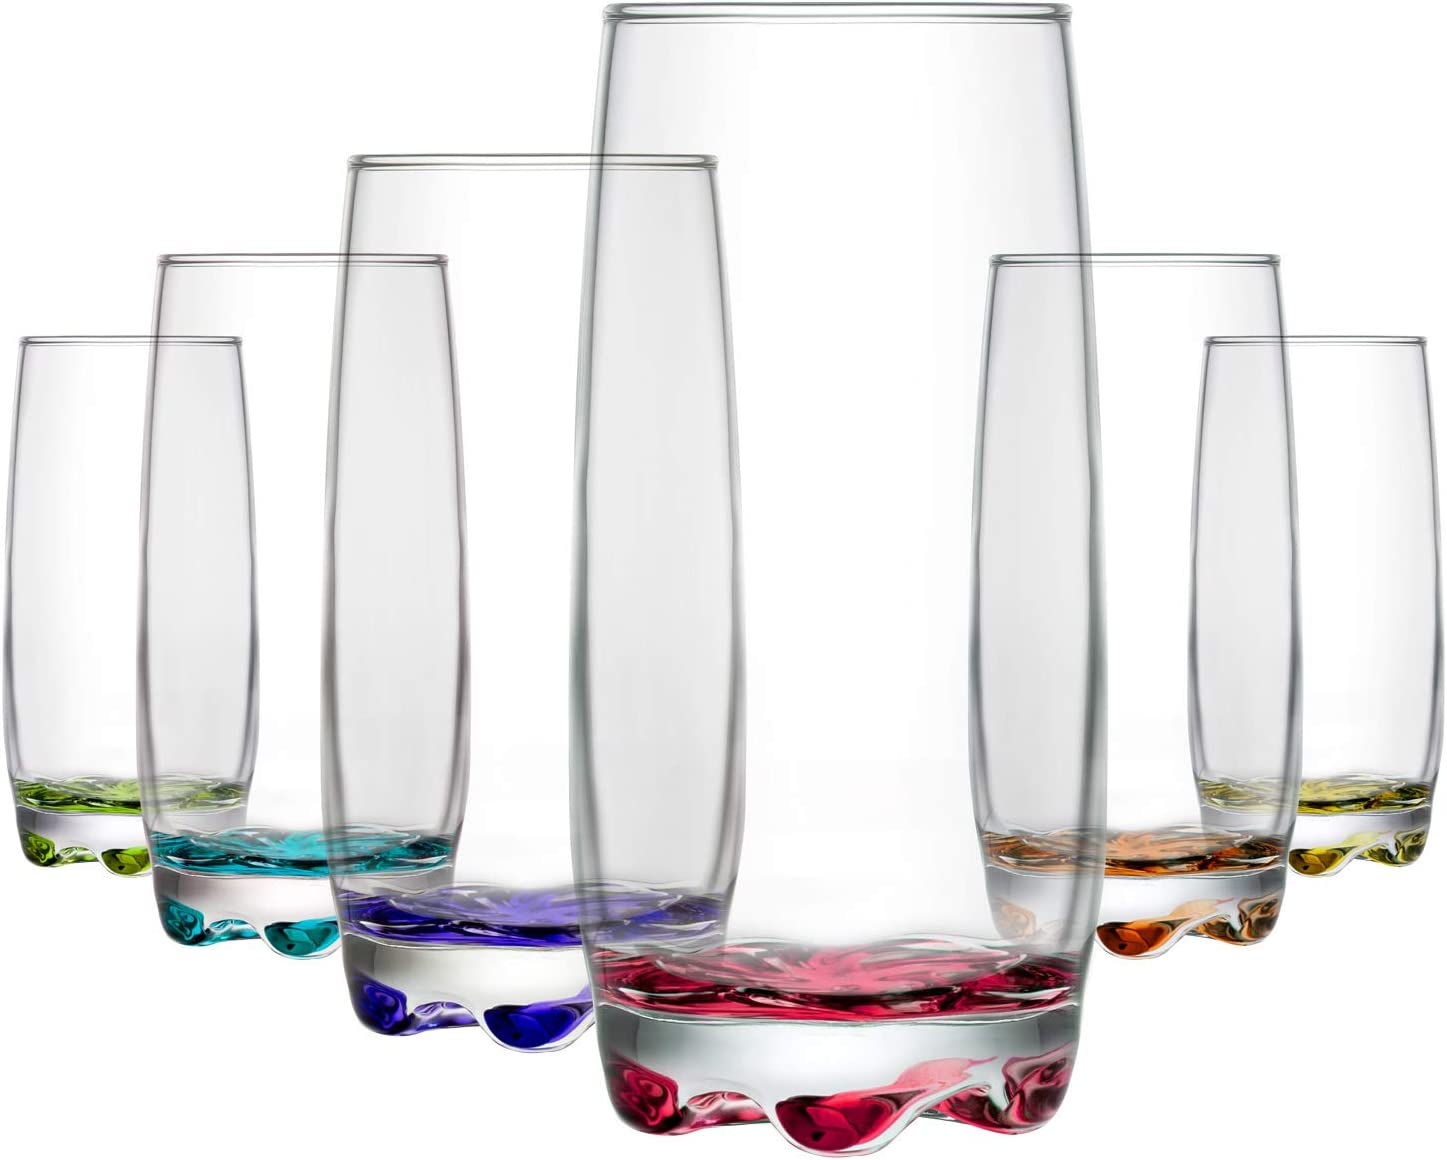 LAV Drinking Glasses Multicolored 6-Piece, 13 Ounce Highball Glass Set for Water & Beverages & Juice & Cocktails, Vibrant Glass Cups, Dishwasher Safe